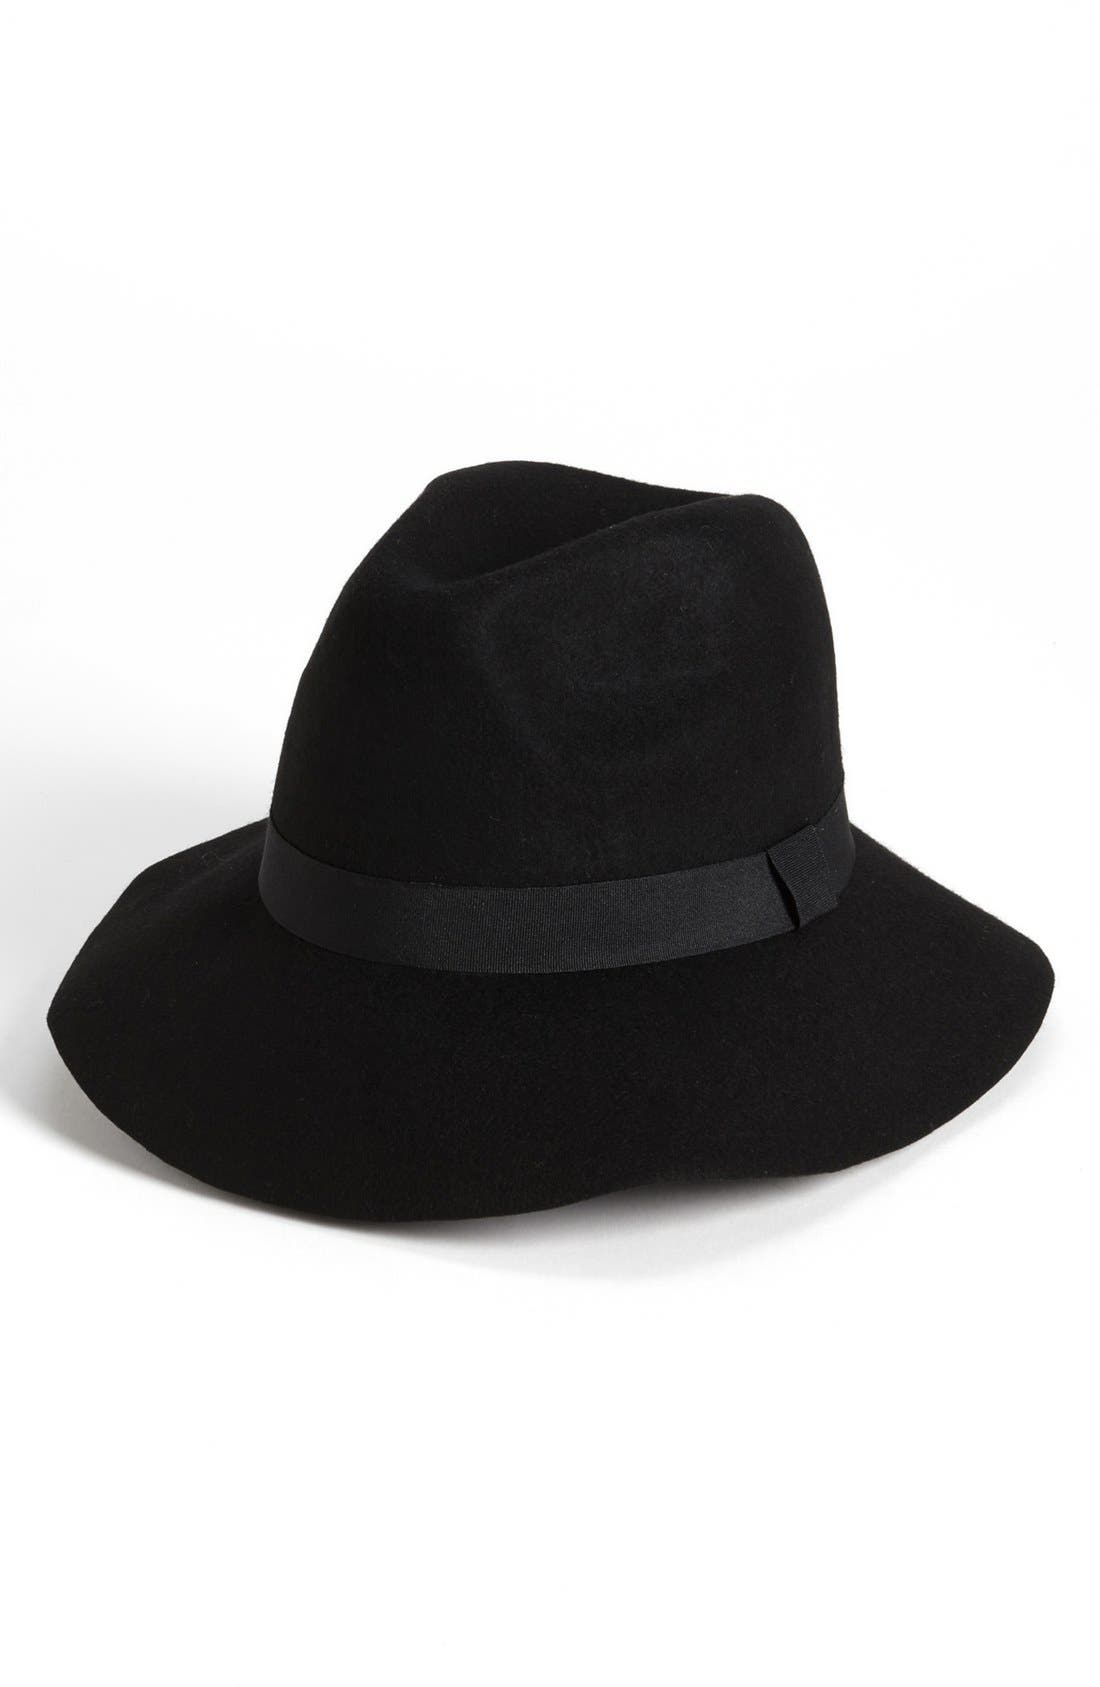 Felt Fedora,                             Alternate thumbnail 2, color,                             001